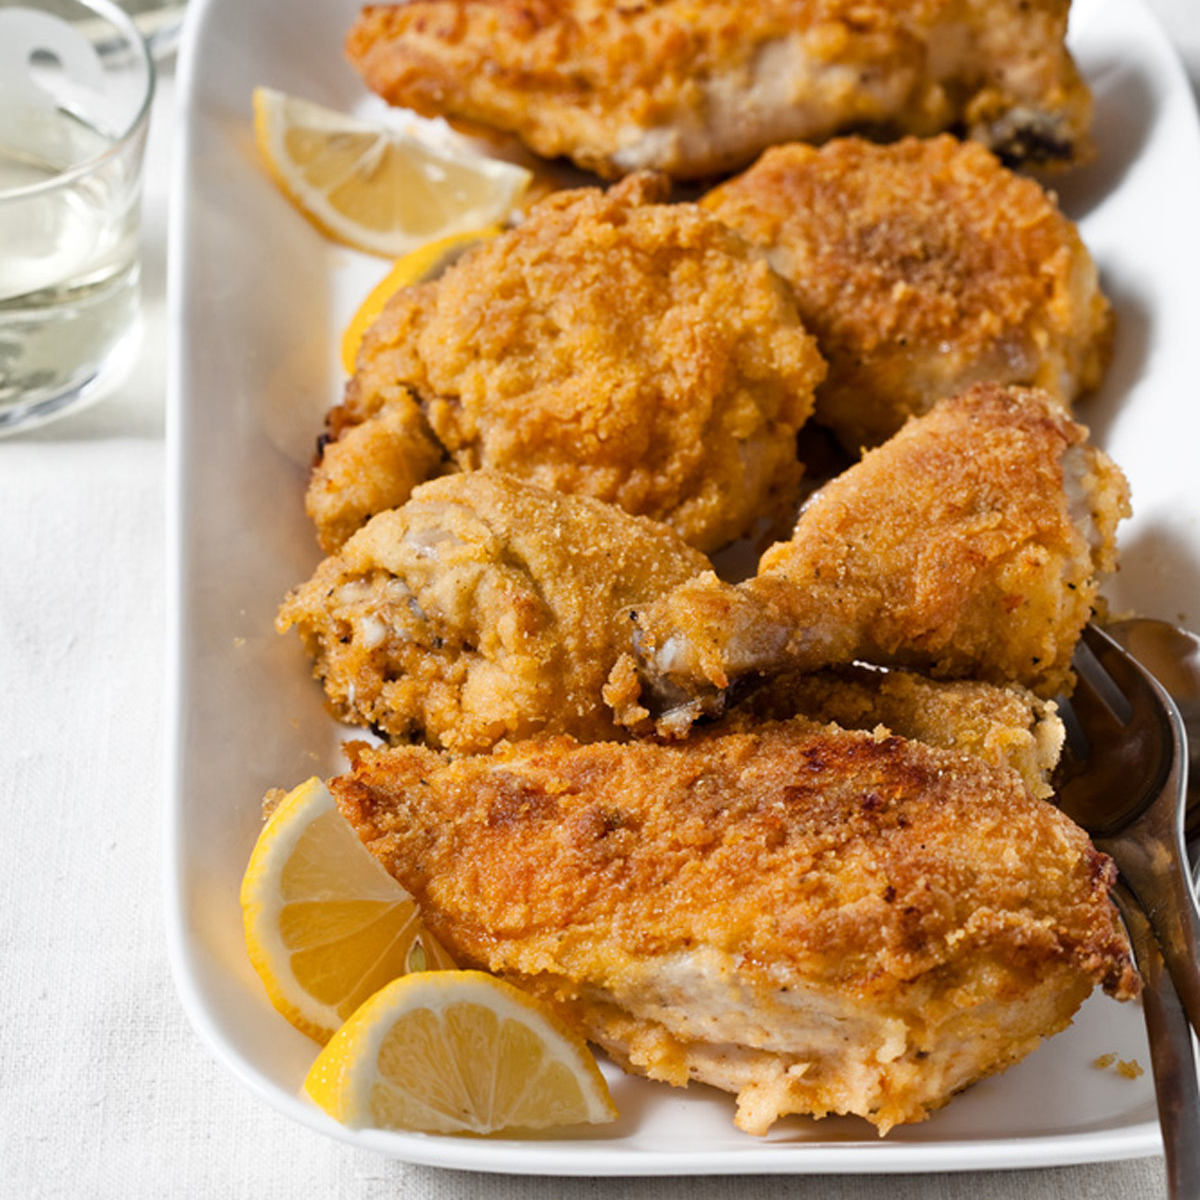 More Delicious Fried Chicken Dishes